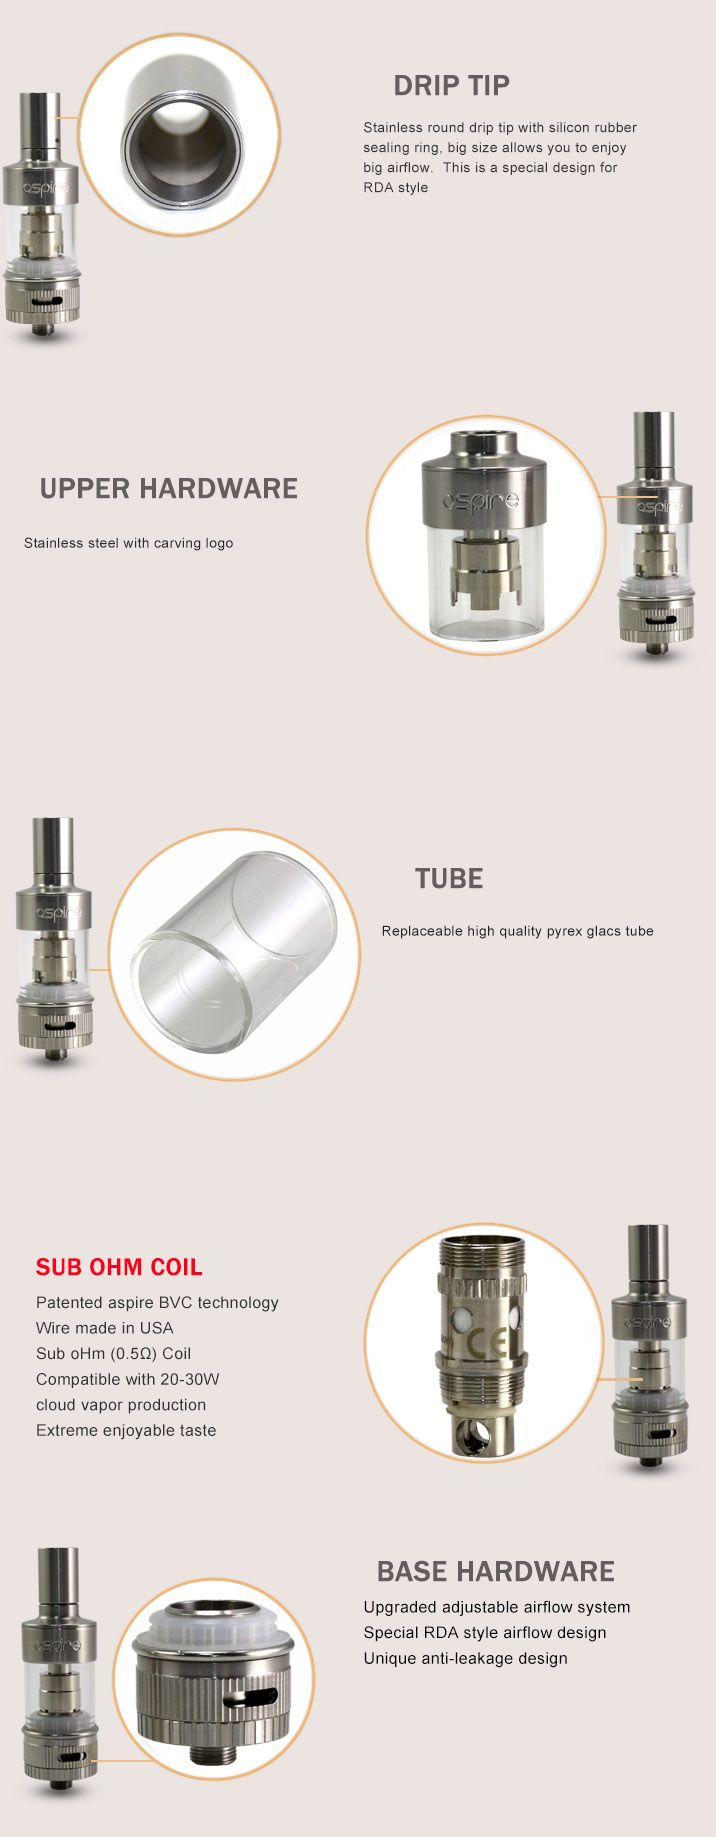 The Aspire Atlantis tank system brings improved adjustable airflow and Sub Ohm coils that provides performance similar to even the best rebuildable atomizer. By enhancing Aspire's Bottom Vertical Coil design Vapers will experience better taste and vapor production. Aspire's Atlantis Tank design is easy to carry, install, and refill [2.0mL].